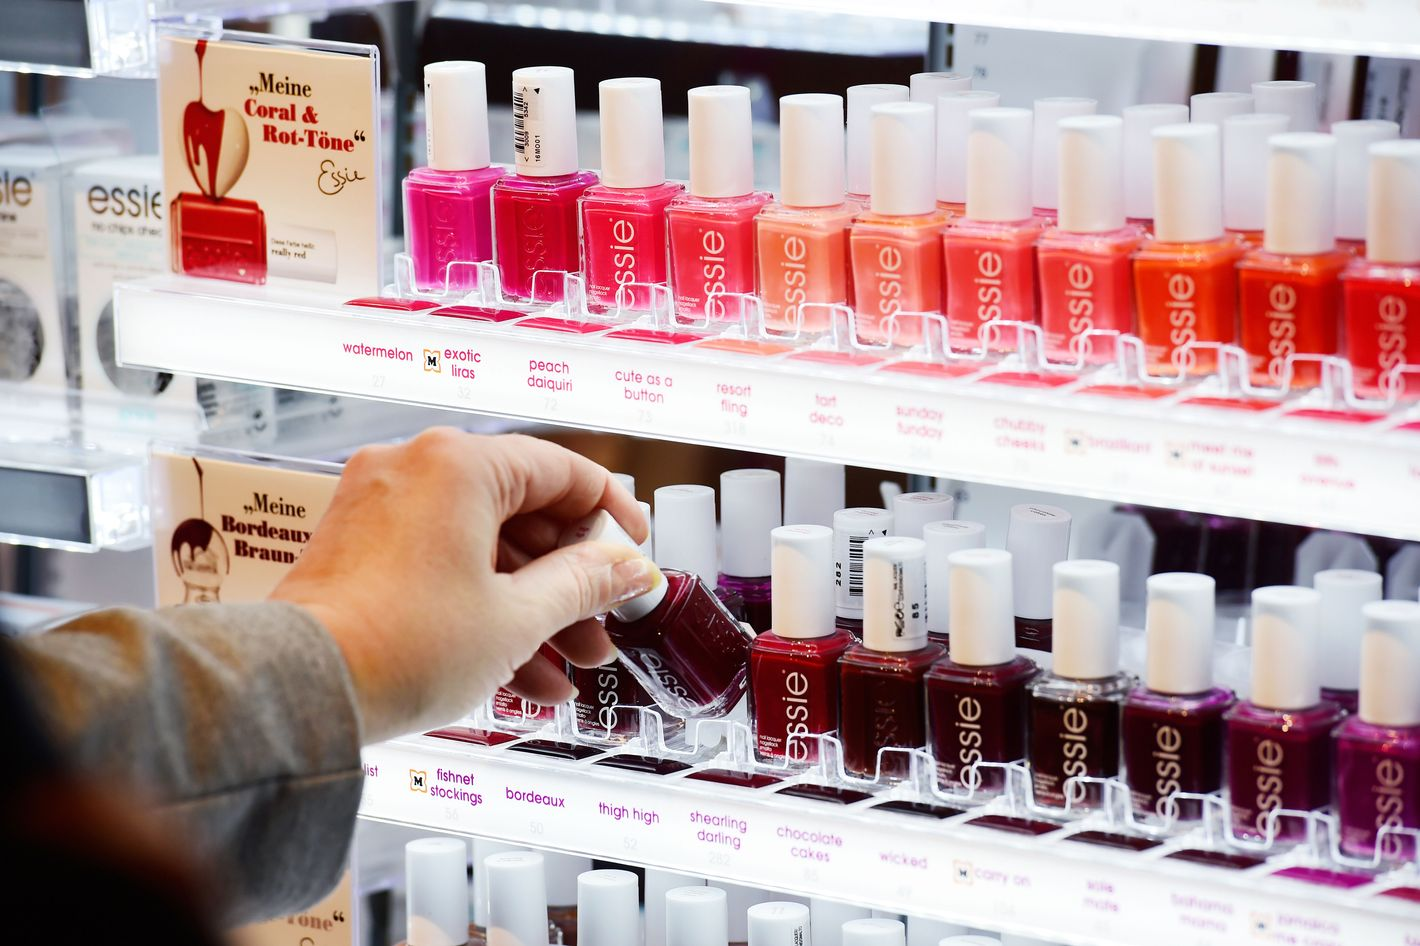 They Finally Identified New York\'s Essie Nail Polish Thief